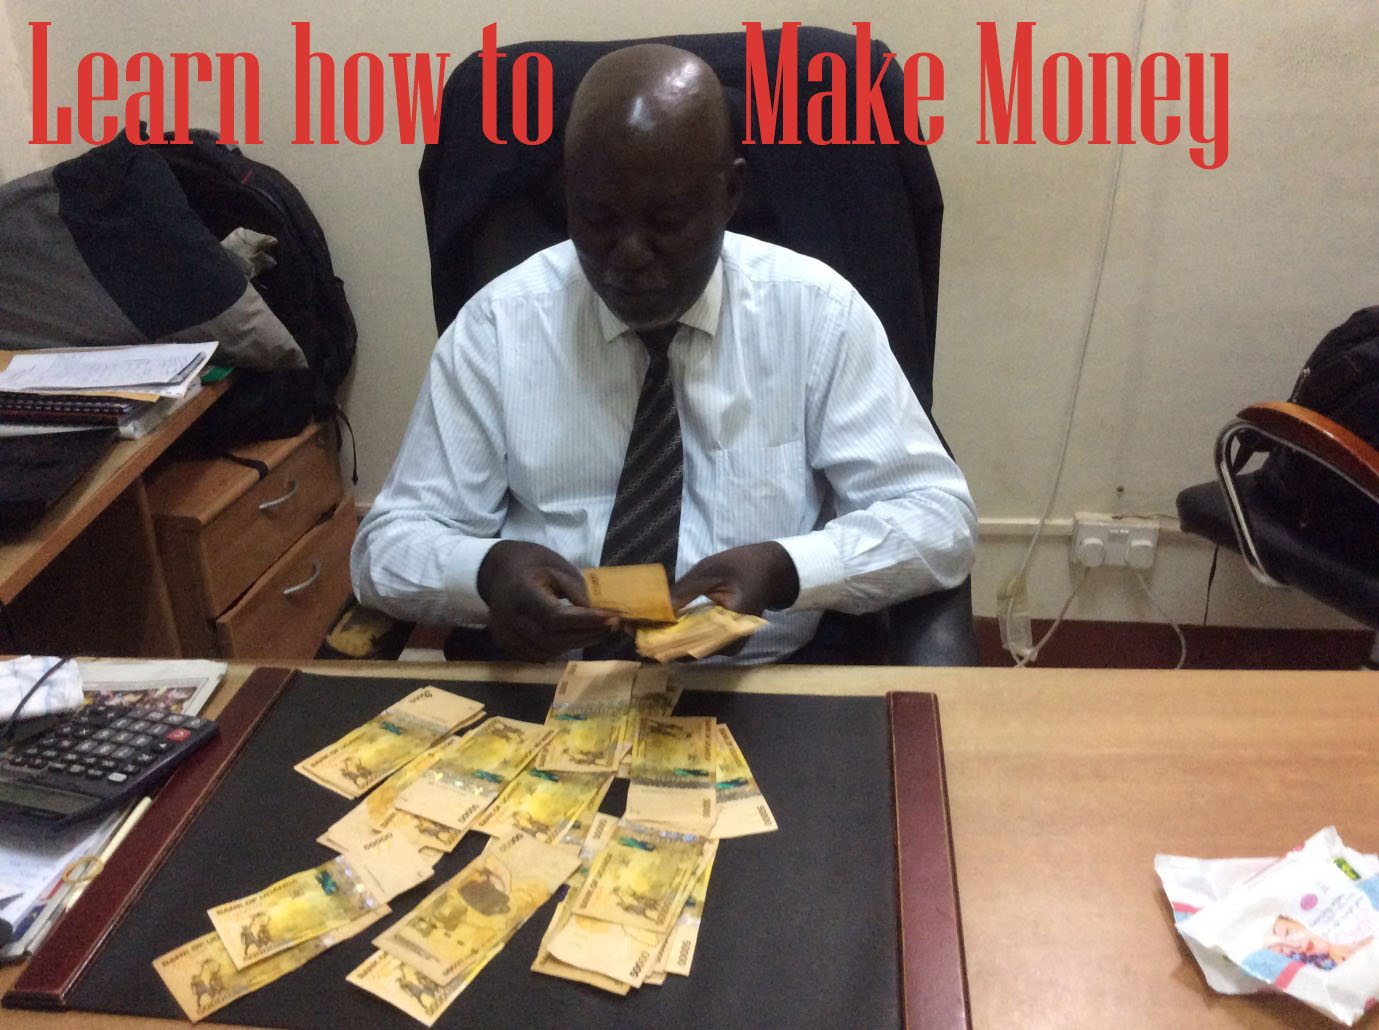 Making money is a personal choice